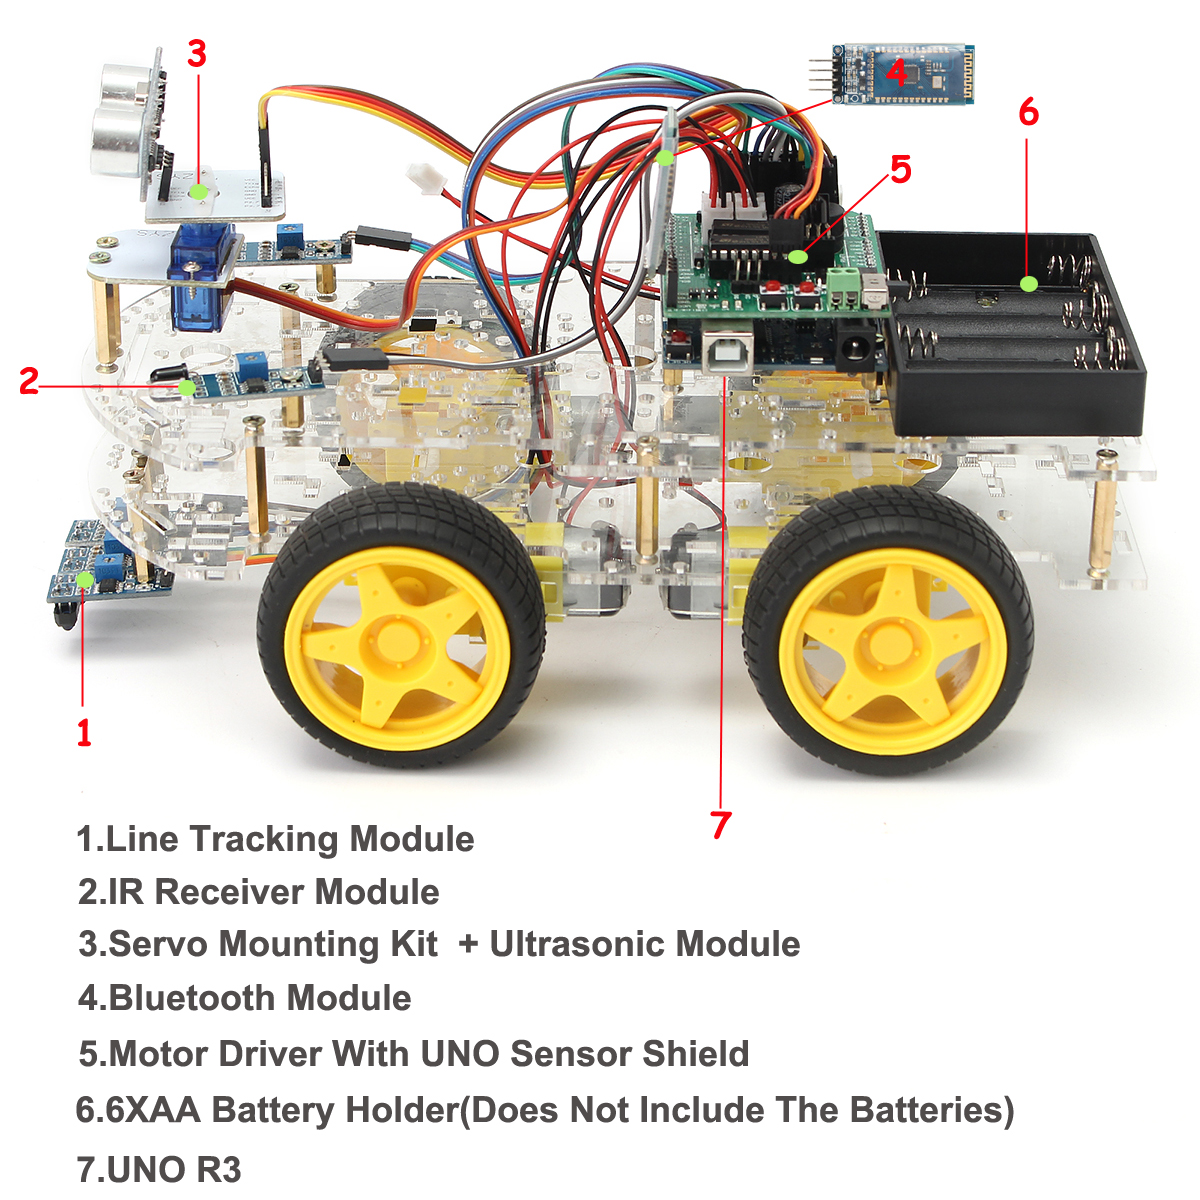 Integrated Circuits Multi-function Smart Car Kit Bluetooth Chassis Suit Tracking Compatible Uno R3 Diy Rc Electronic Toy Robot Reliable Performance